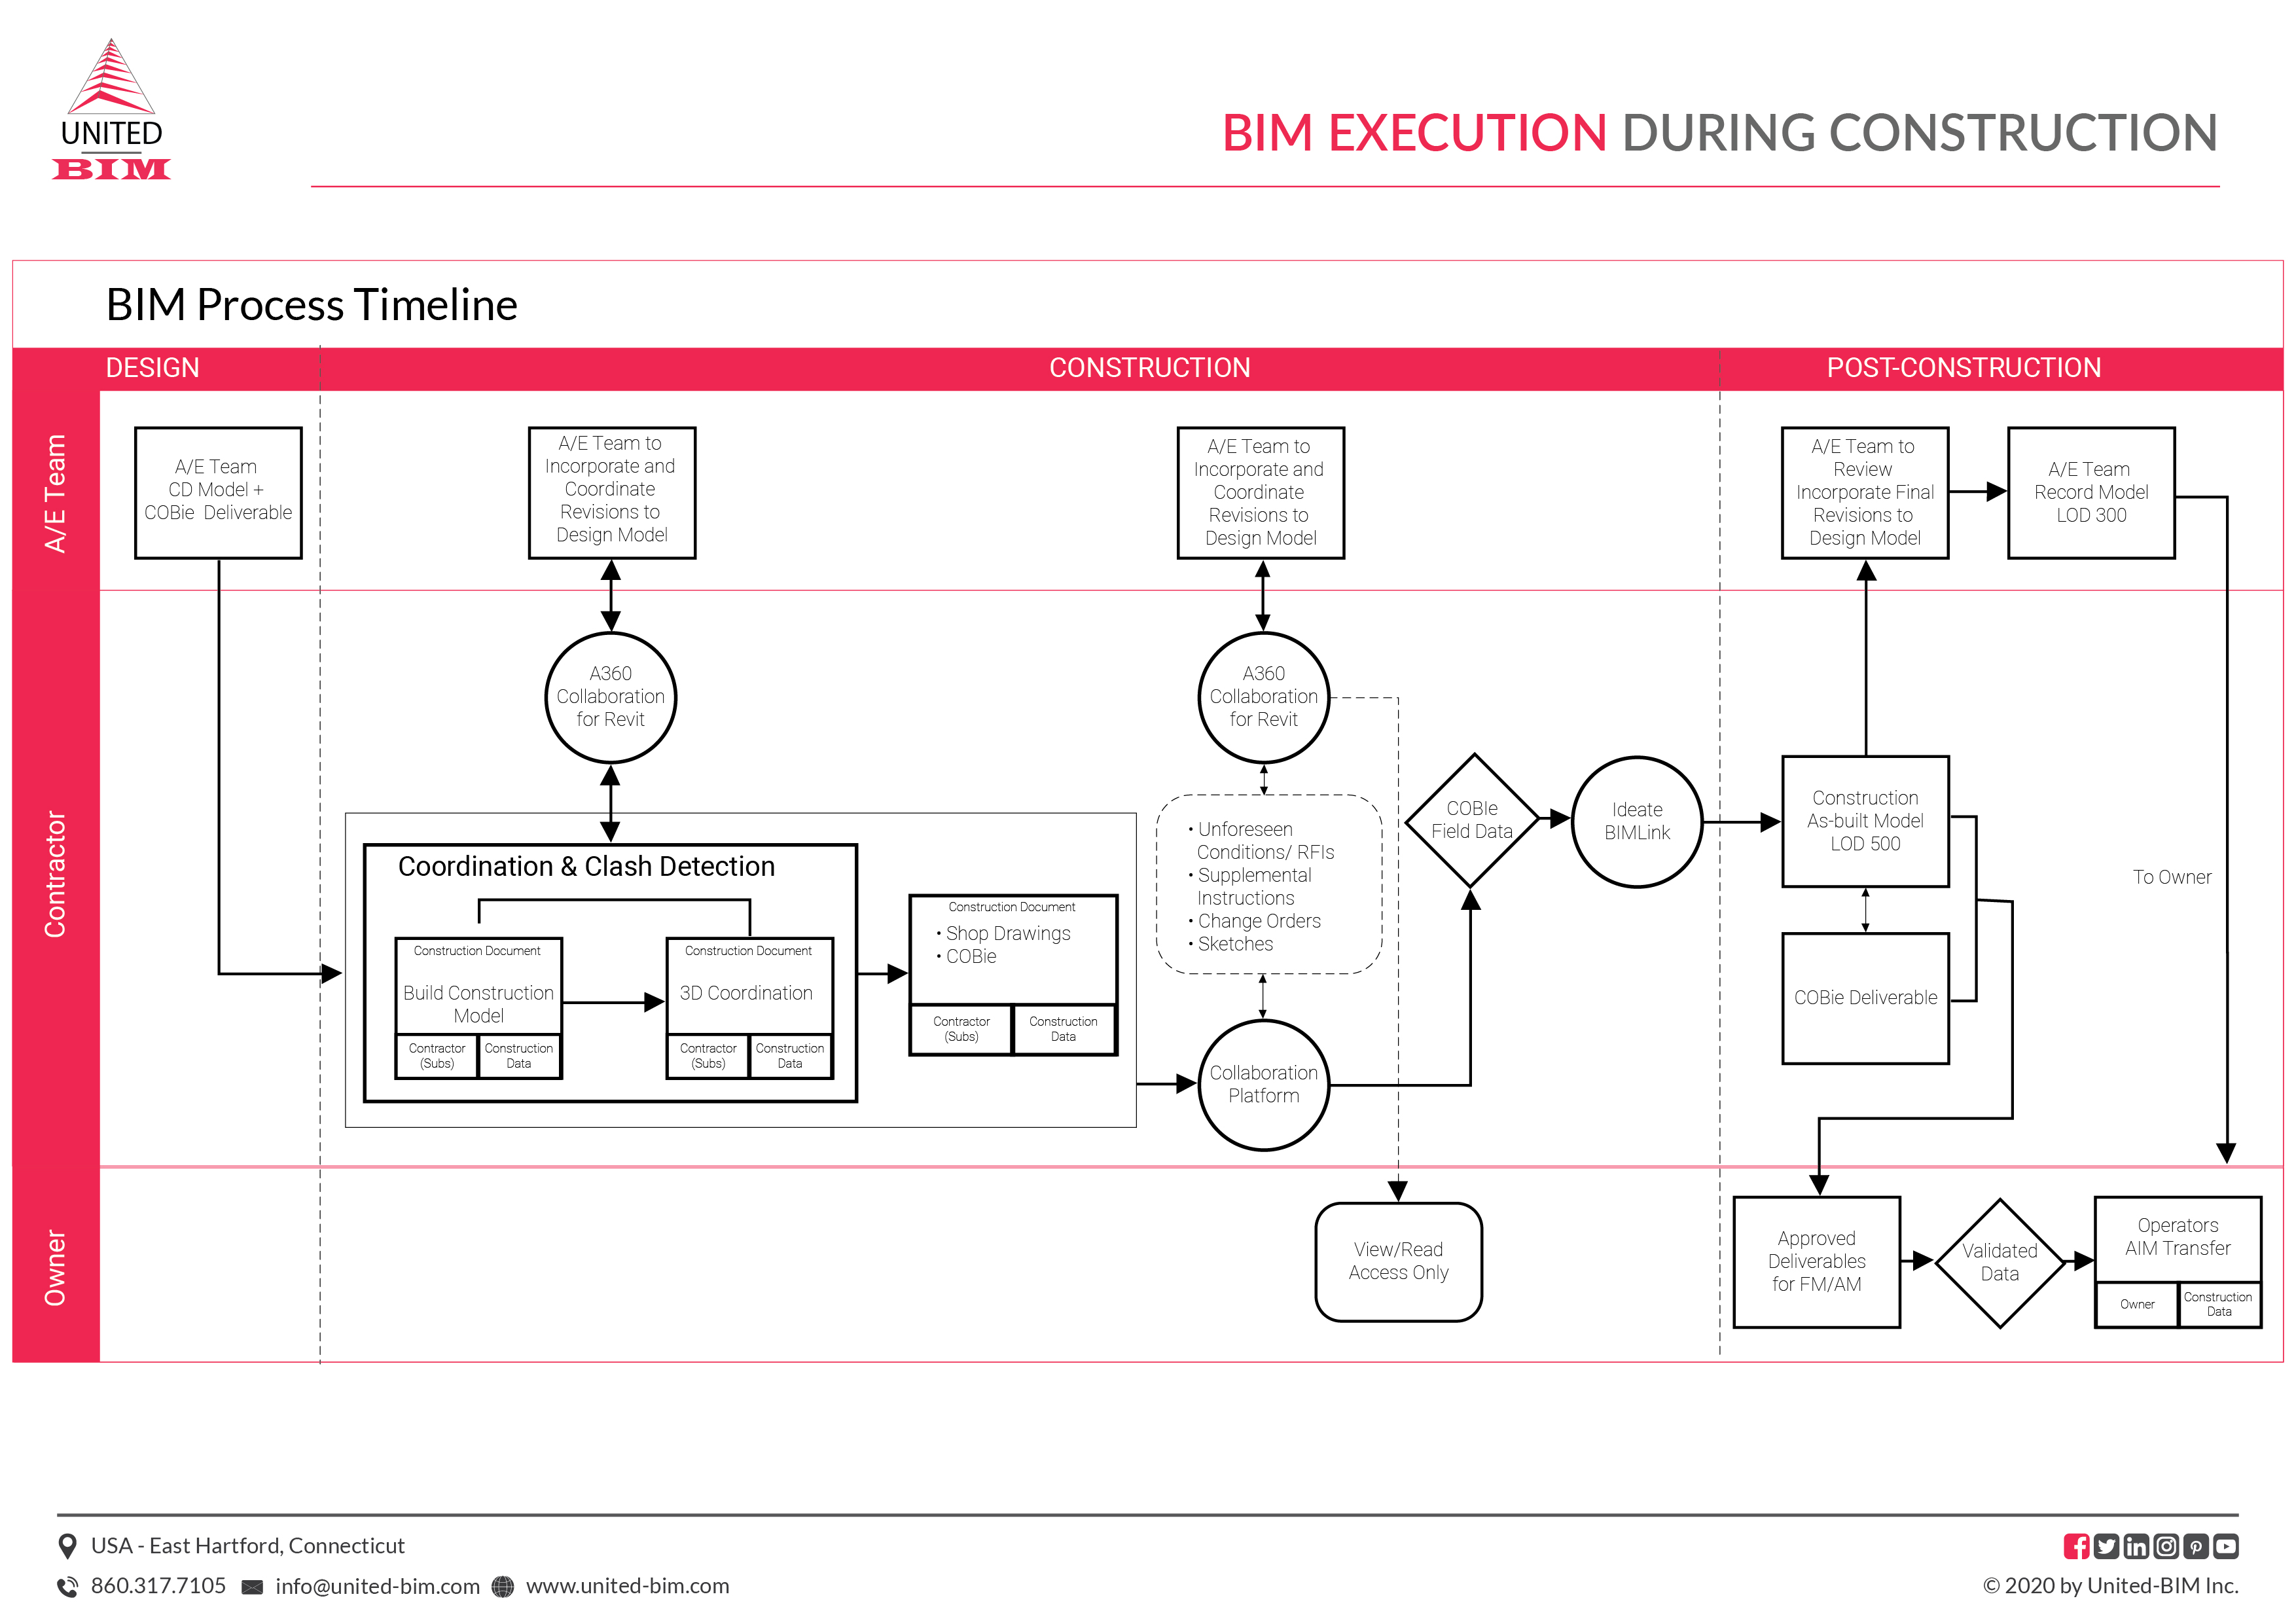 BEP-BXP- BIM Execution Plan in Construction Projects by United-BIM